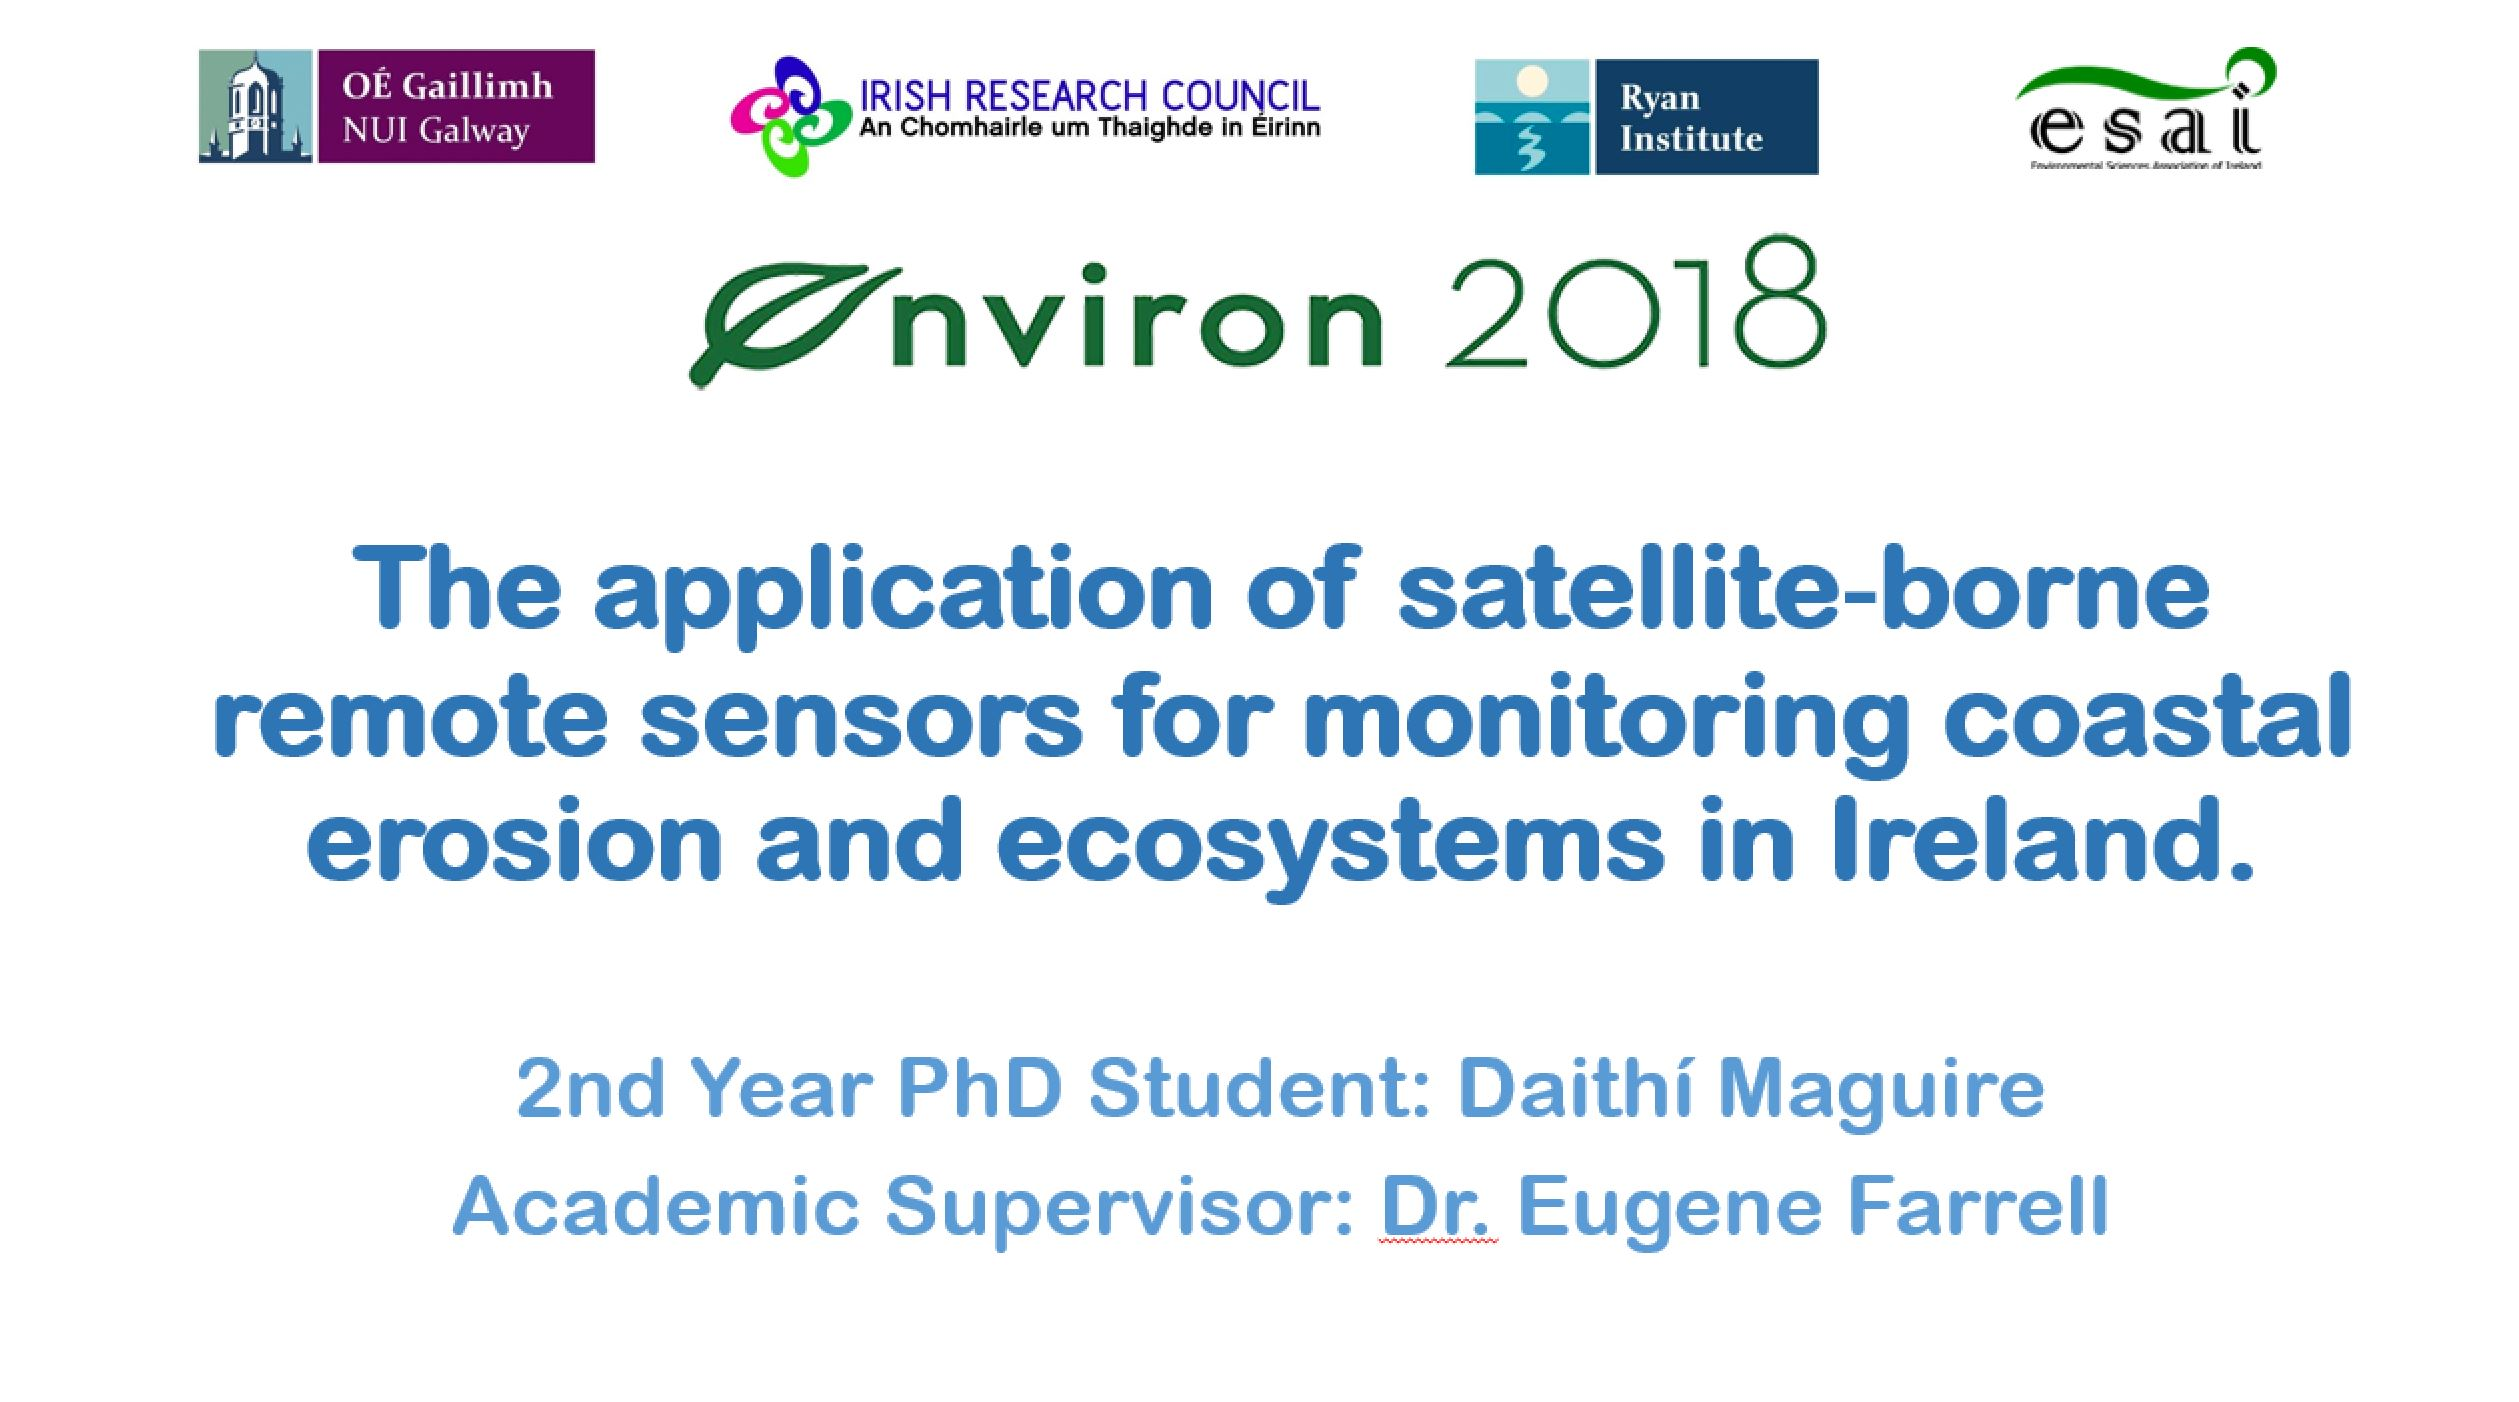 Daithi Maguire, presentation prize winner at Environ 2018-image